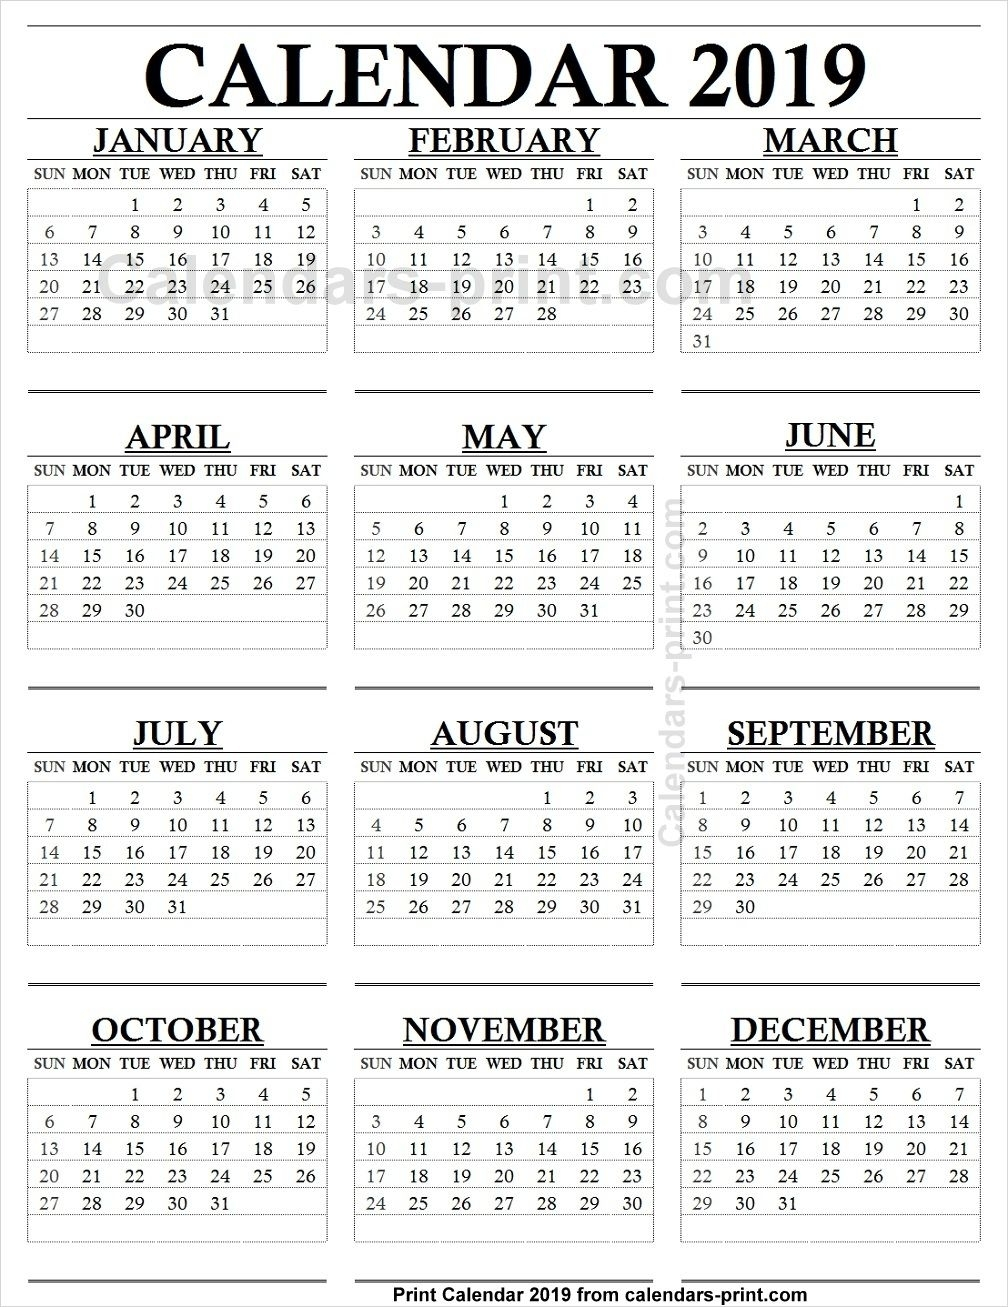 12 Month Calendar 2019 One Page | 2019 Yearly Calendar | 12 Month for 12 Month Calendar One Page